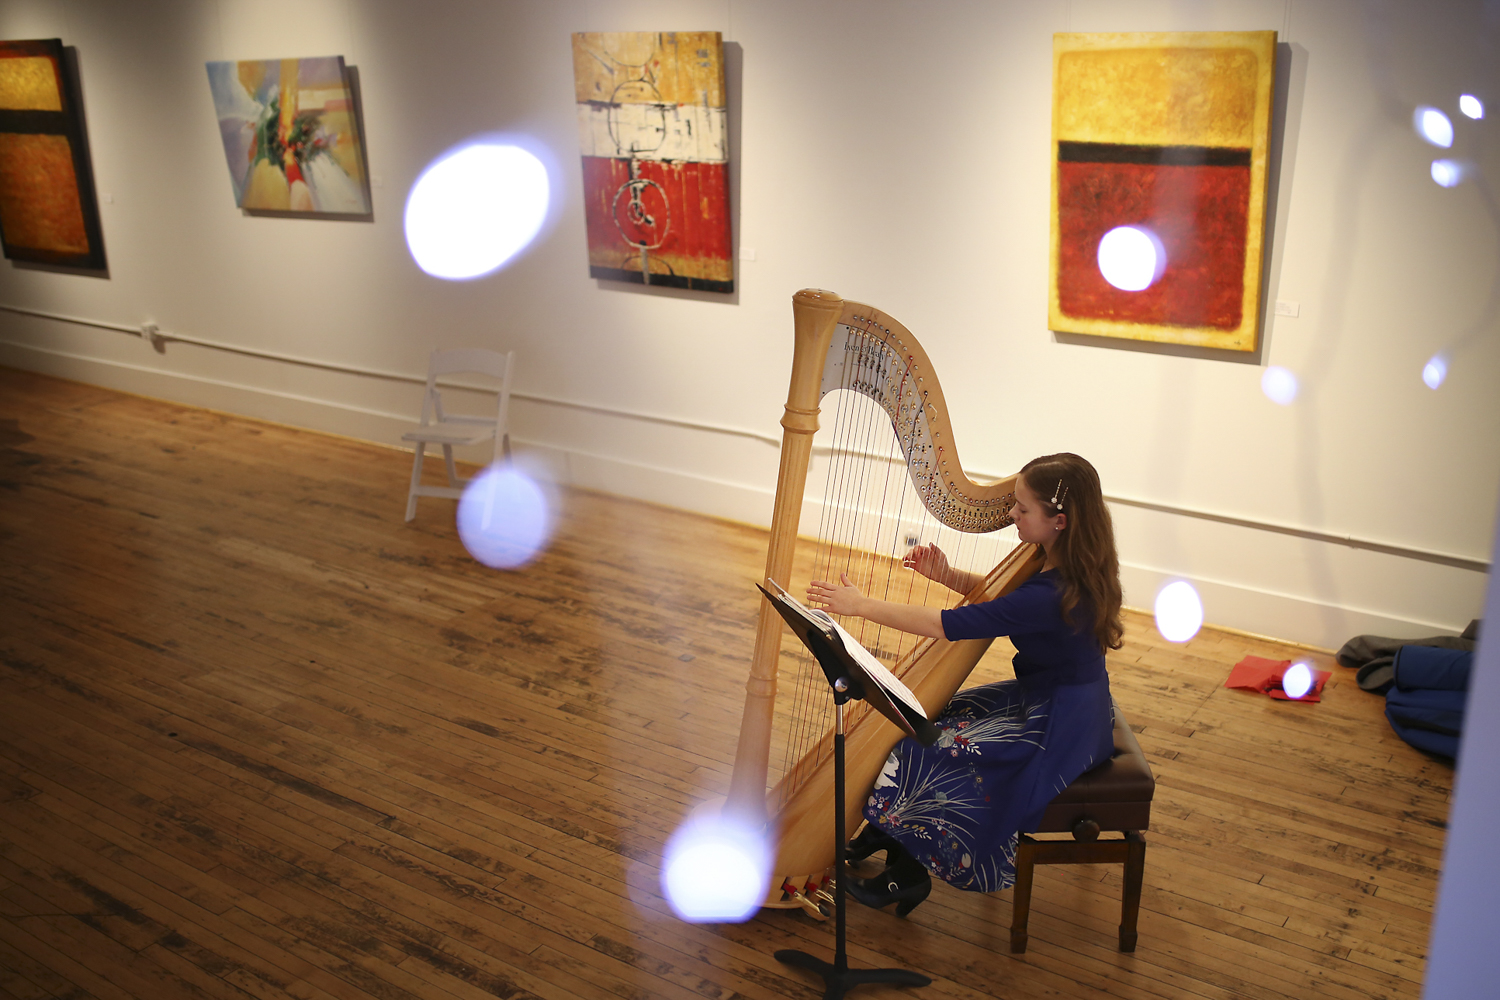 Elizabeth Johnson, 13, performs on the harp during Friday for the Arts! celebrations at The Ward Center for Contemporary Art in Petersburg on Friday, Feb. 10, 2017. [Scott P. Yates/progress-index.com]